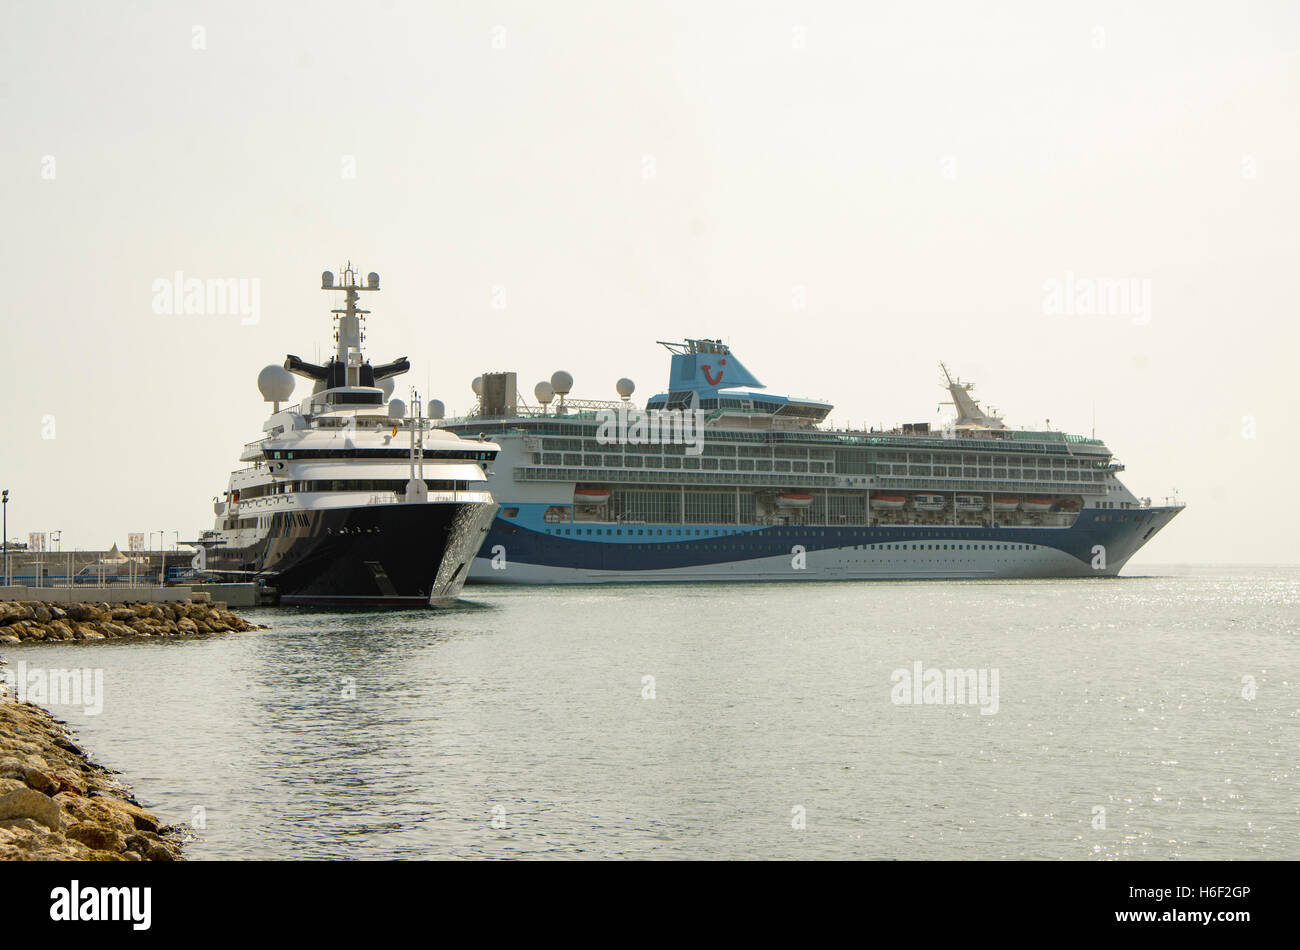 Modern Cruise Line TUI Discovery And Mega Yacht Octopus In The Port Of Malaga Costa Del Sol Spain